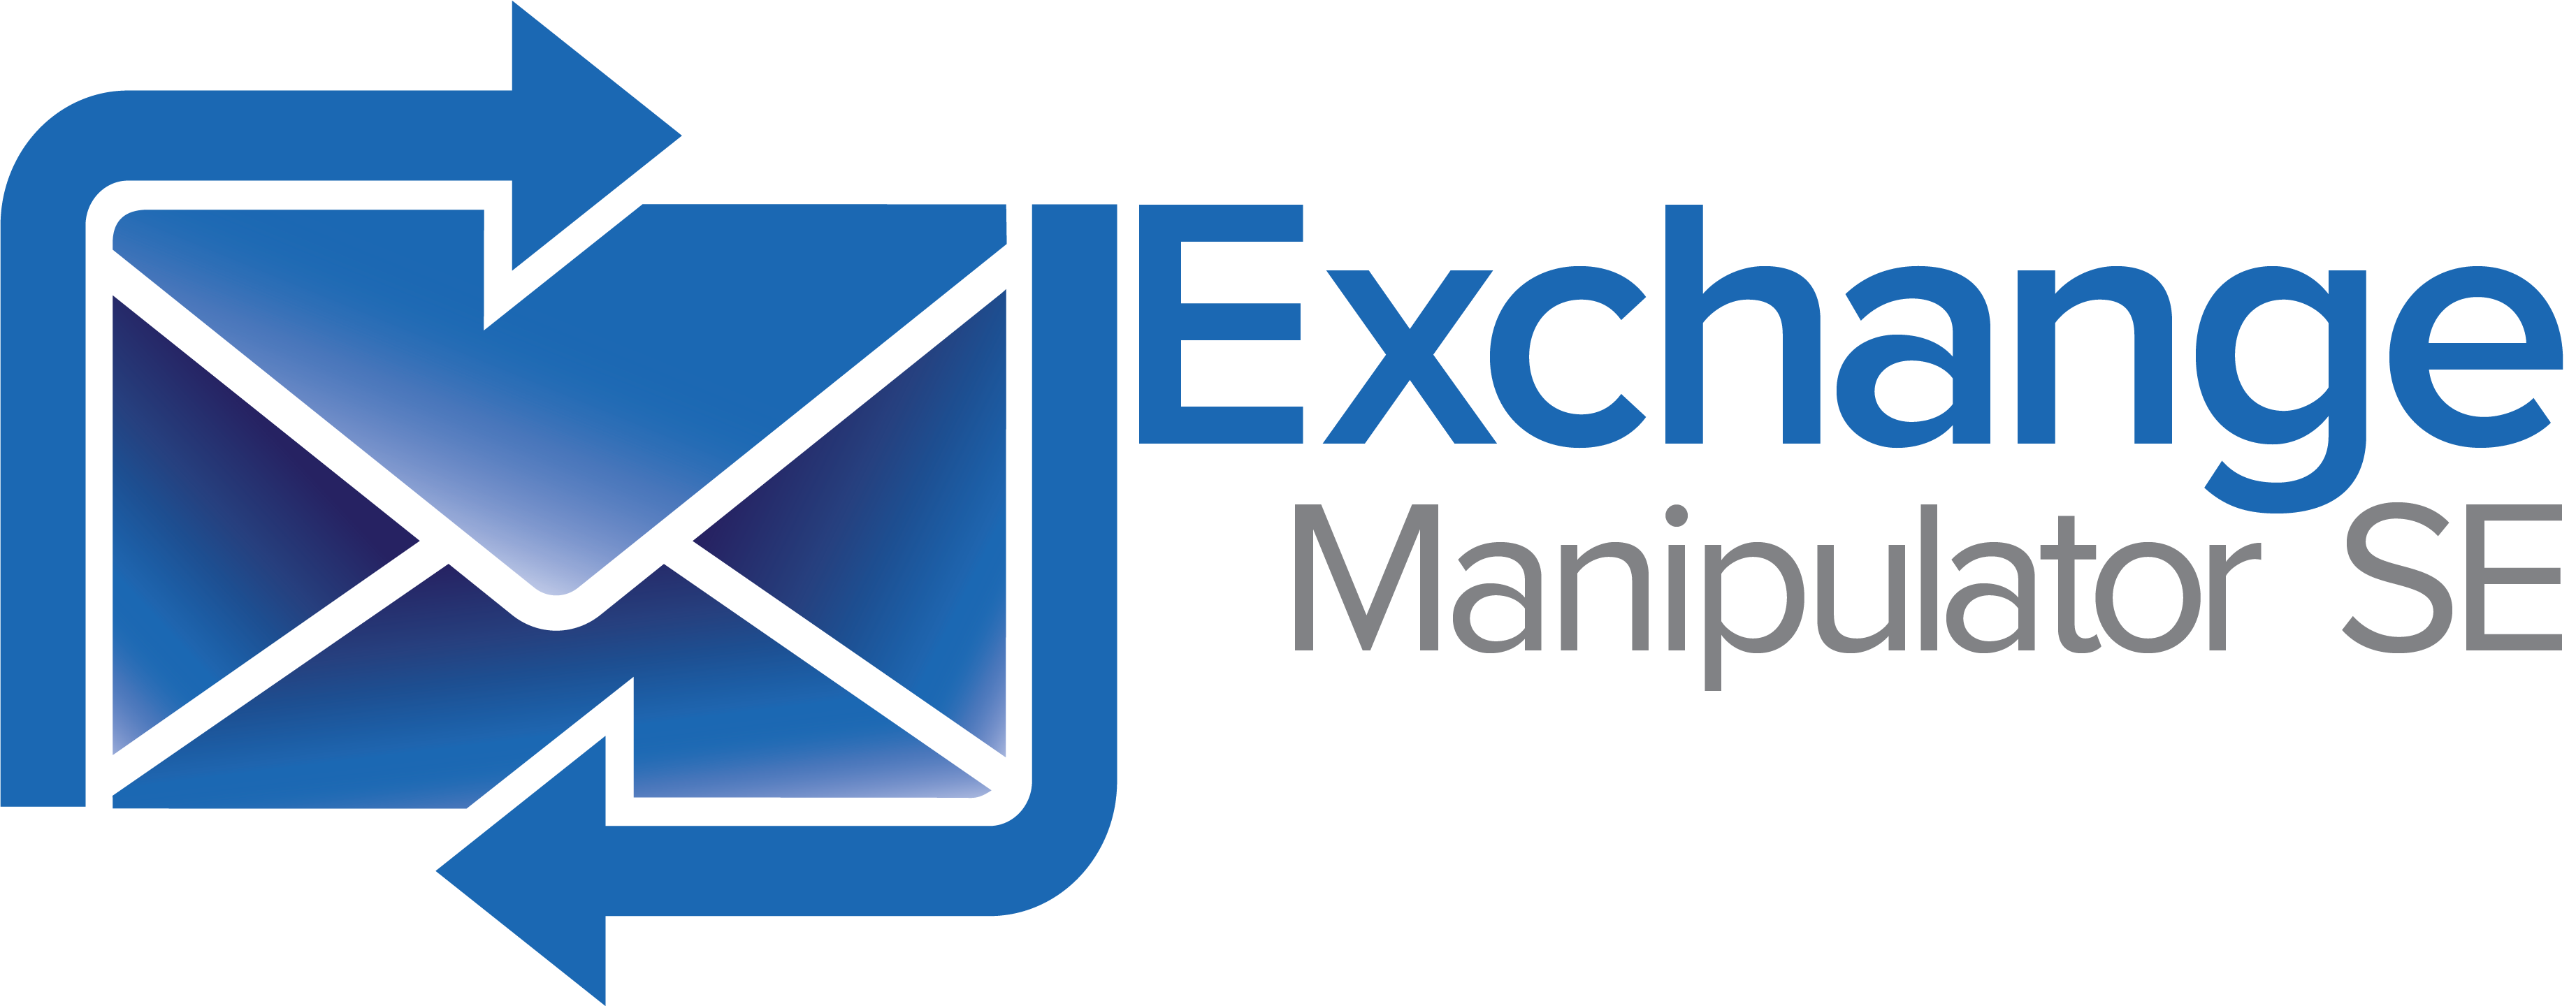 ExchangeManipulatorLogo_900pxWide_Transparent